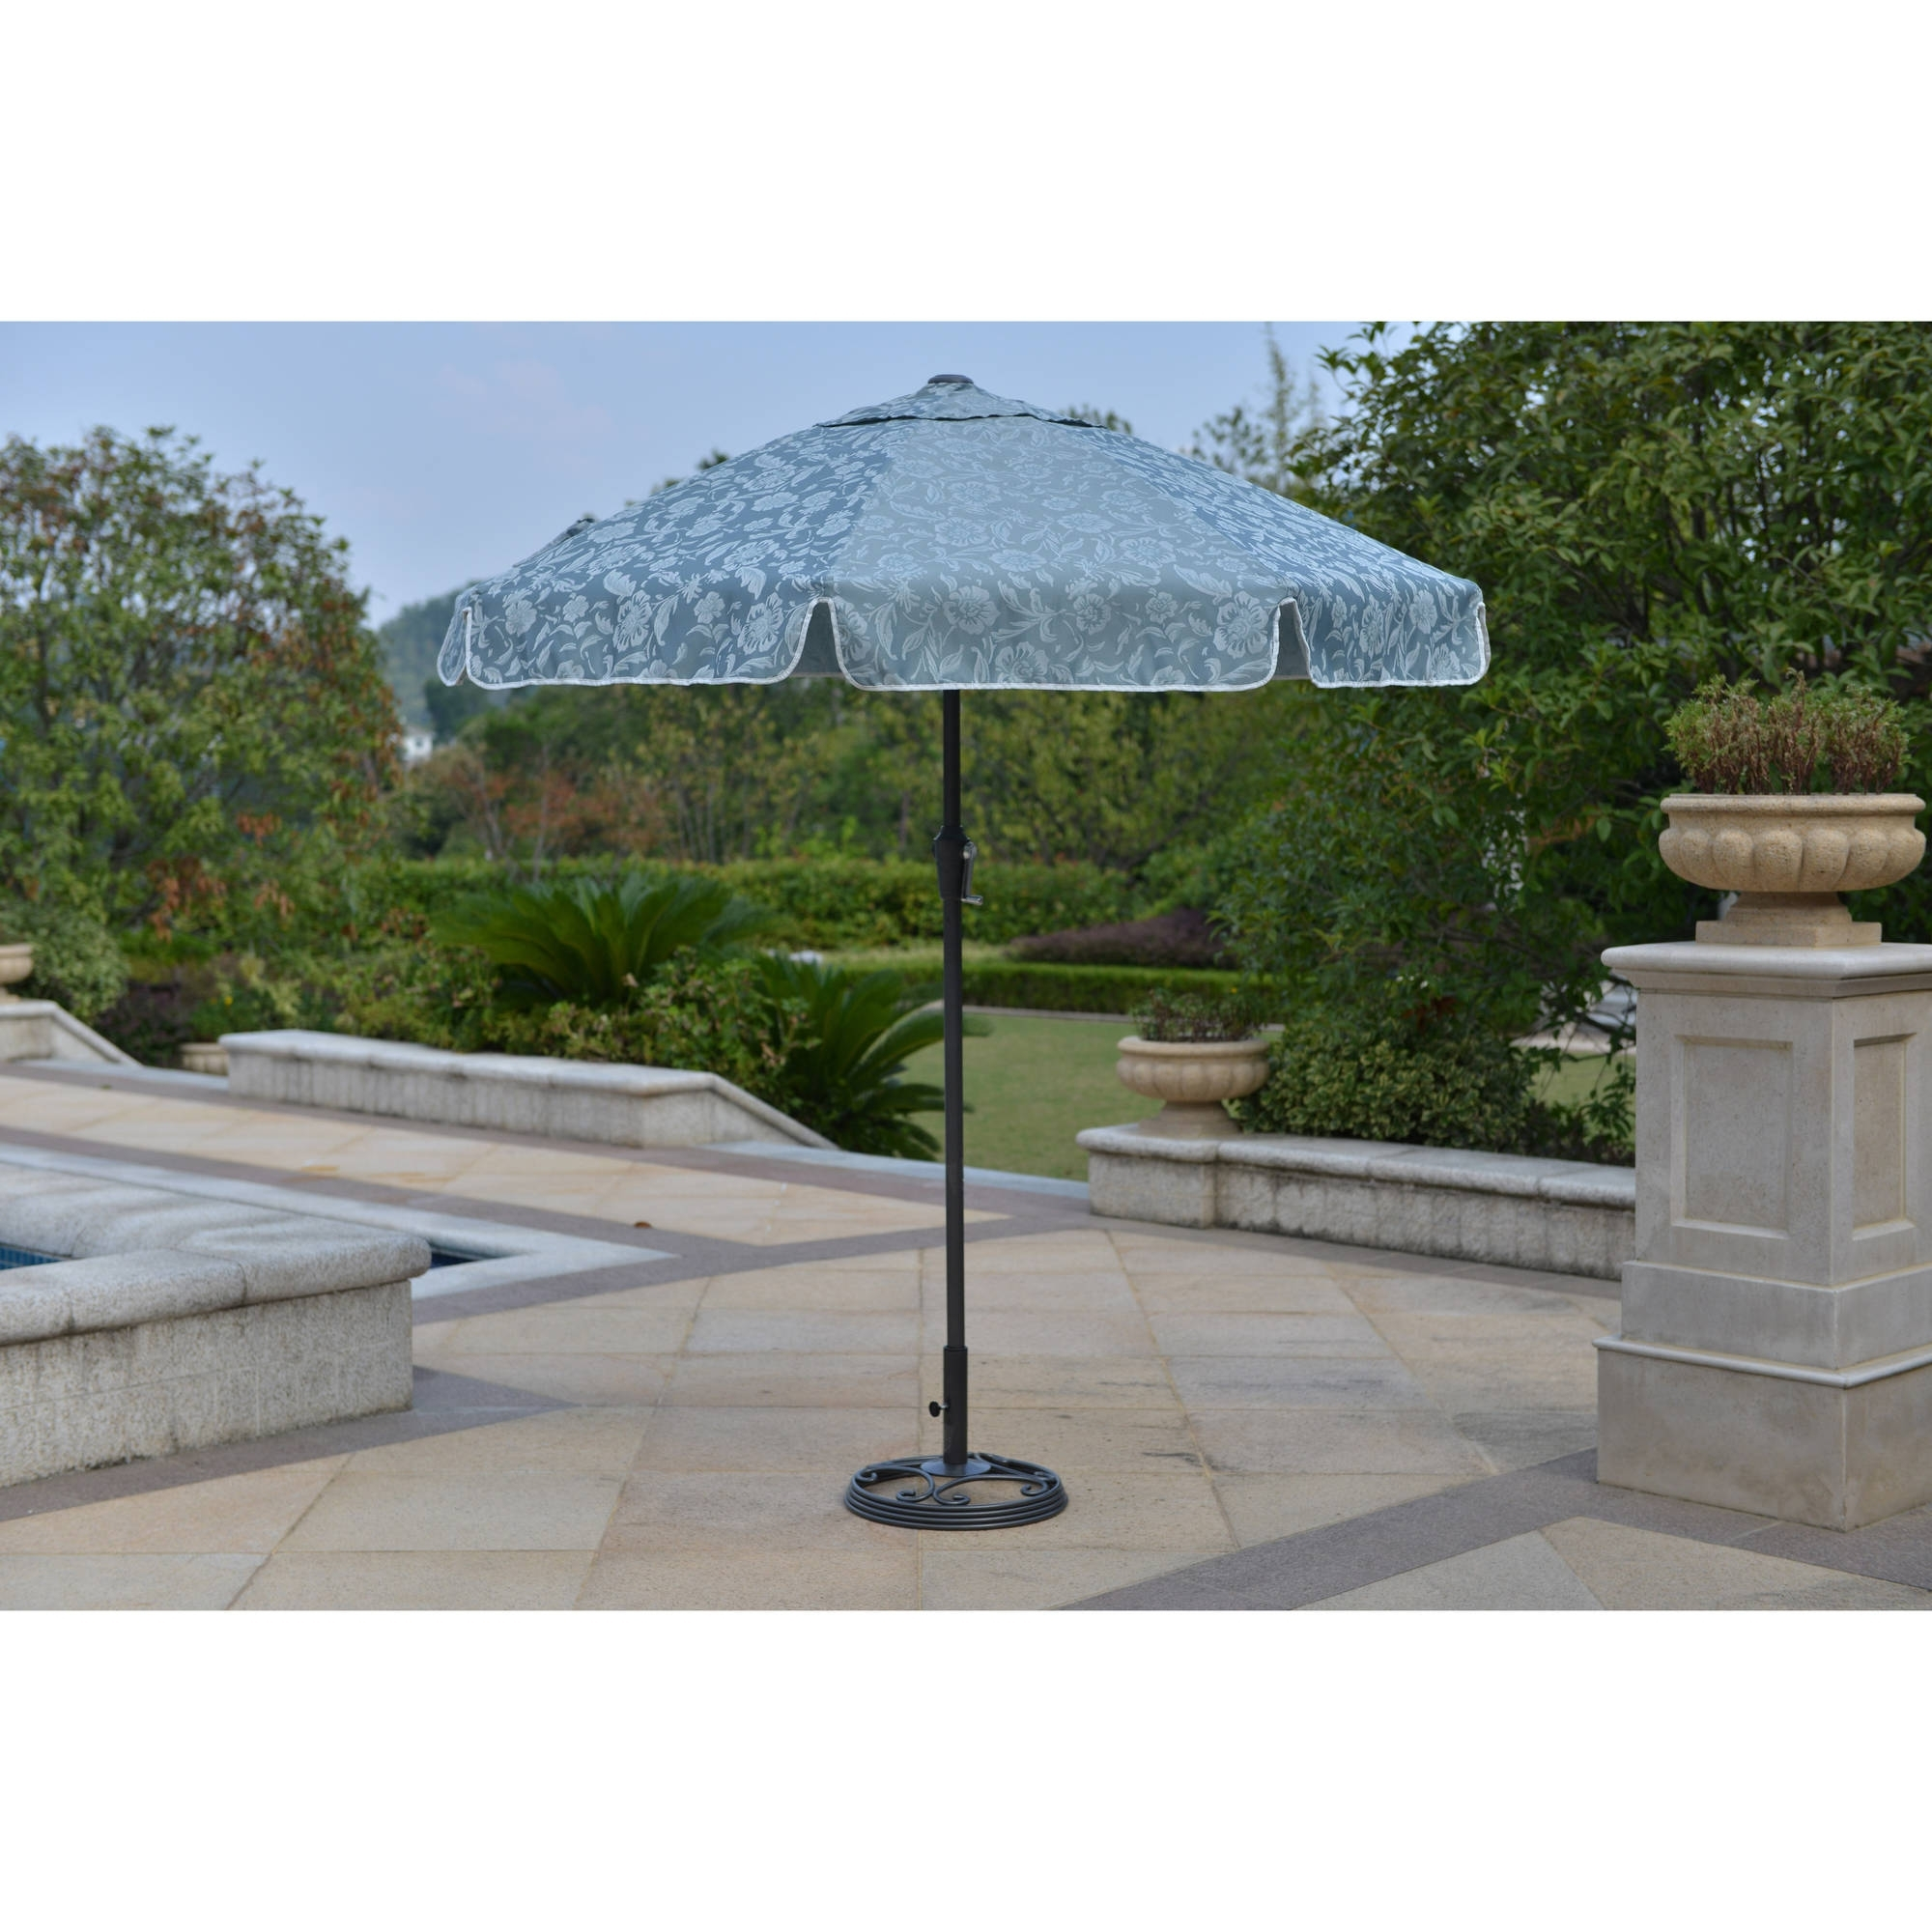 Trendy Blue Patio Umbrellas Regarding New Willow Springs 7 Feet Garden Umbrella, Blue Patio Umbrellas (View 18 of 20)